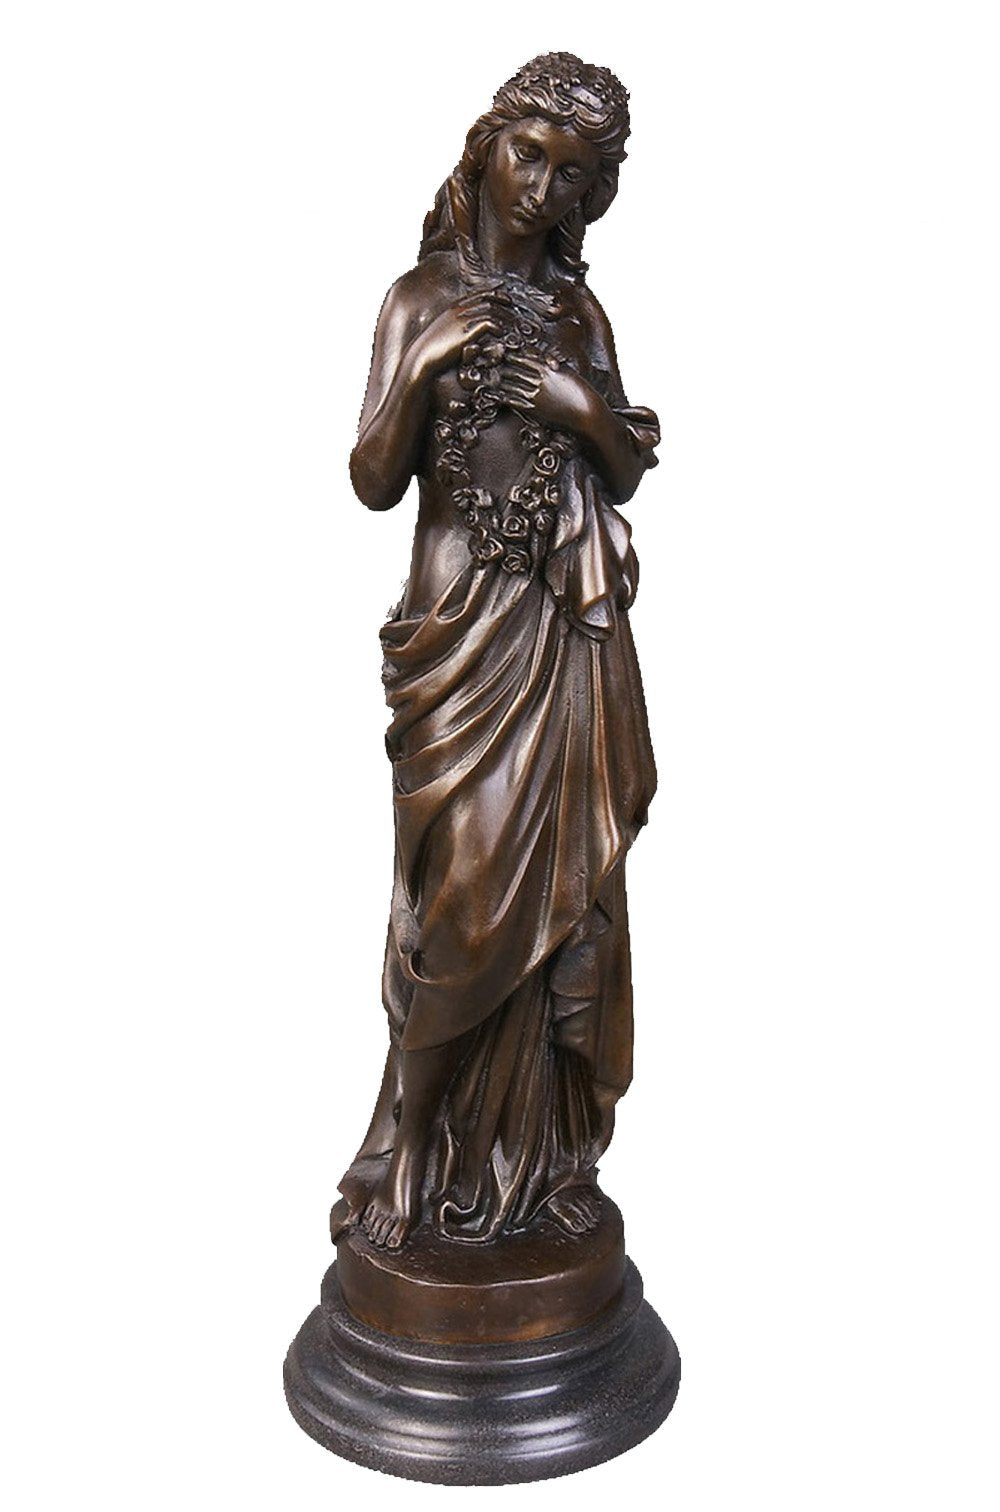 TPY-076 bronze sculpture